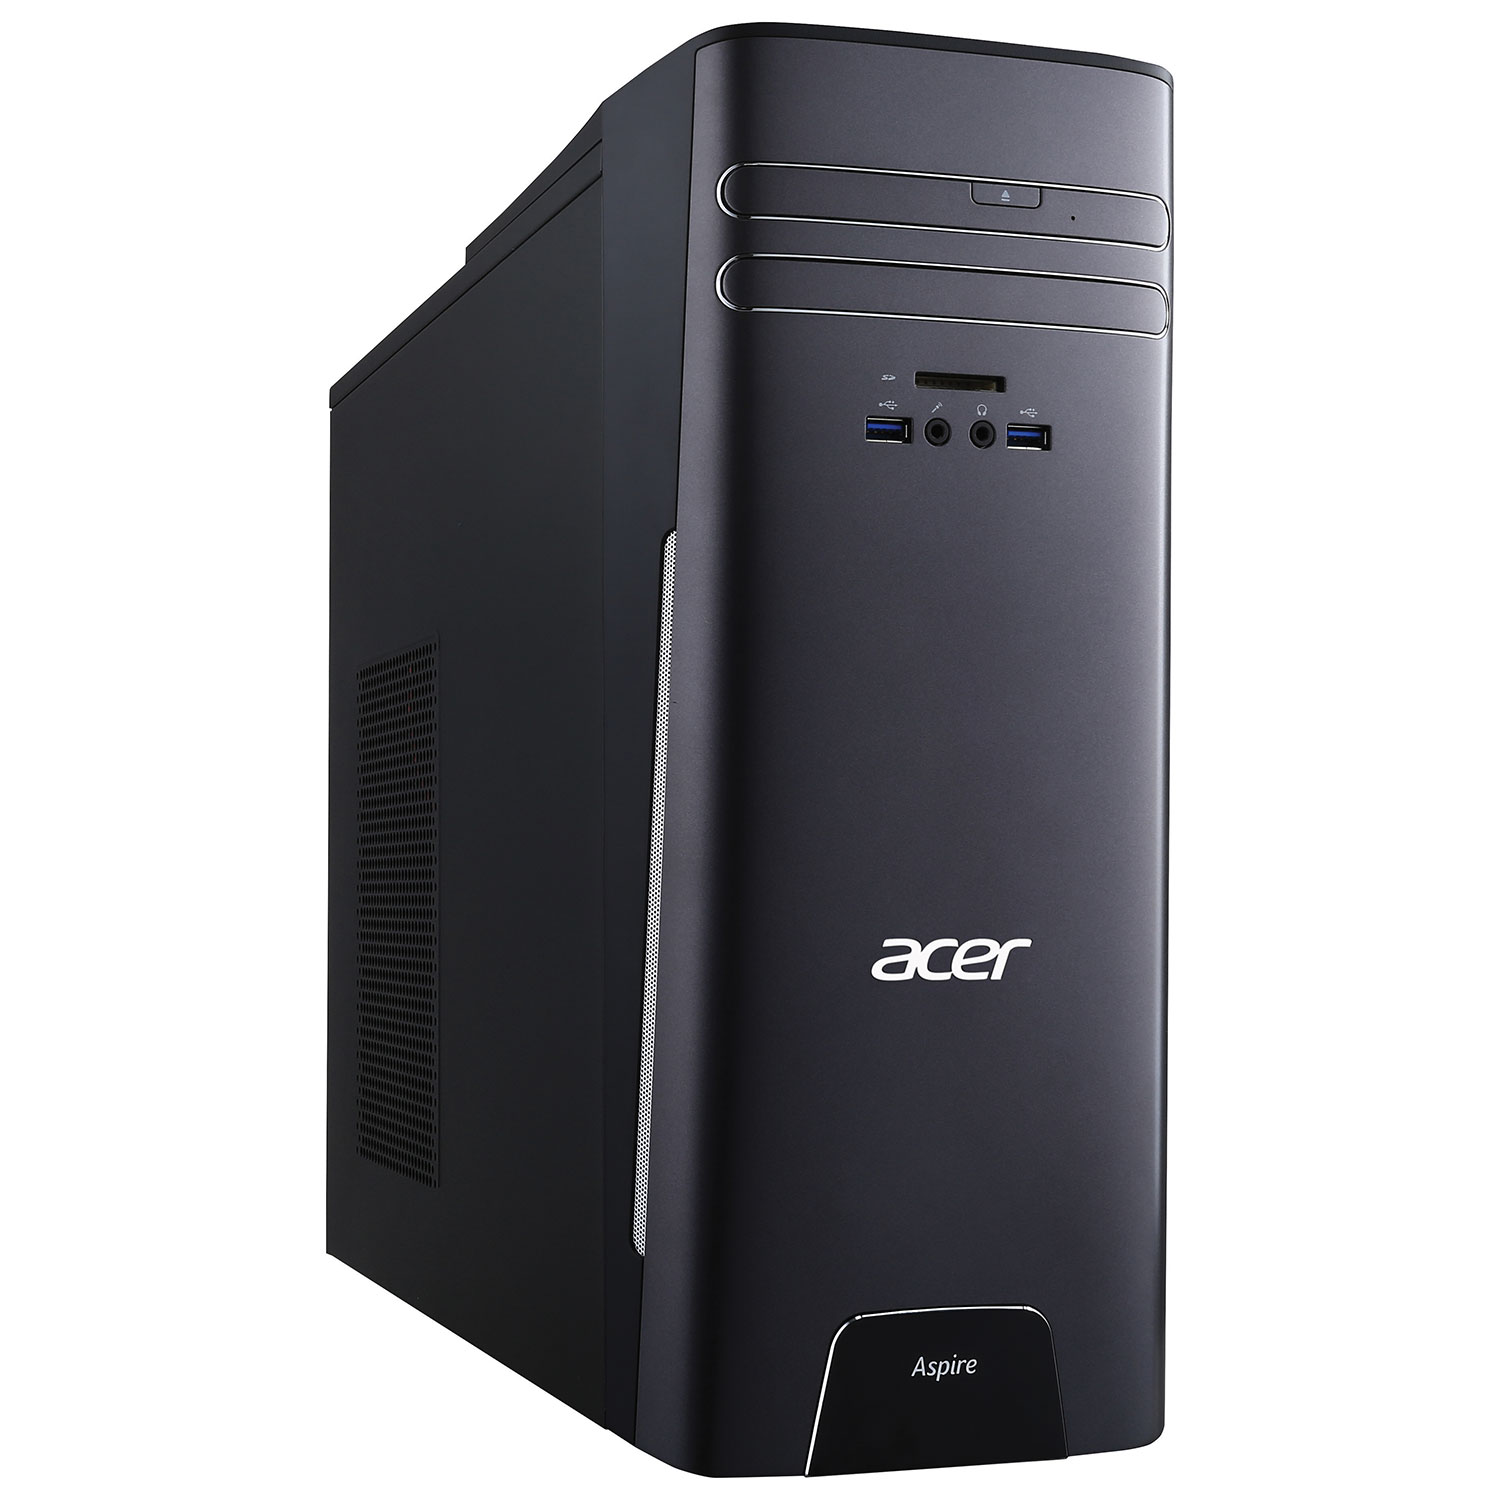 Acer Aspire T3 Gaming PC